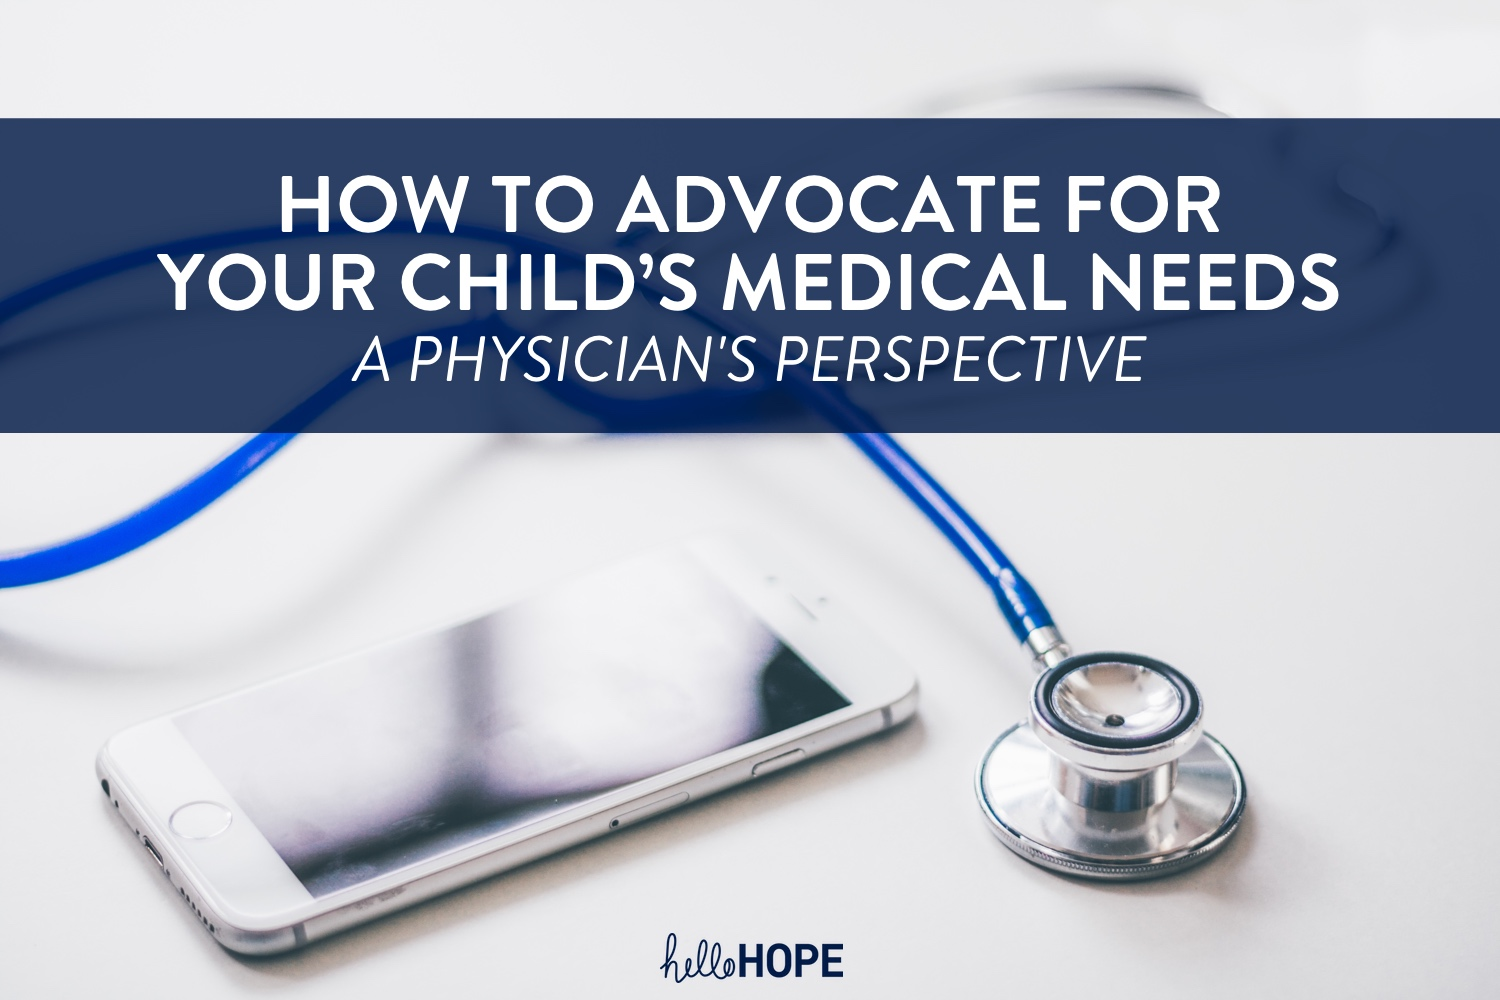 Phone and stethoscope | How to Advocate for Your Child's Medical Needs | helloHOPE Resource